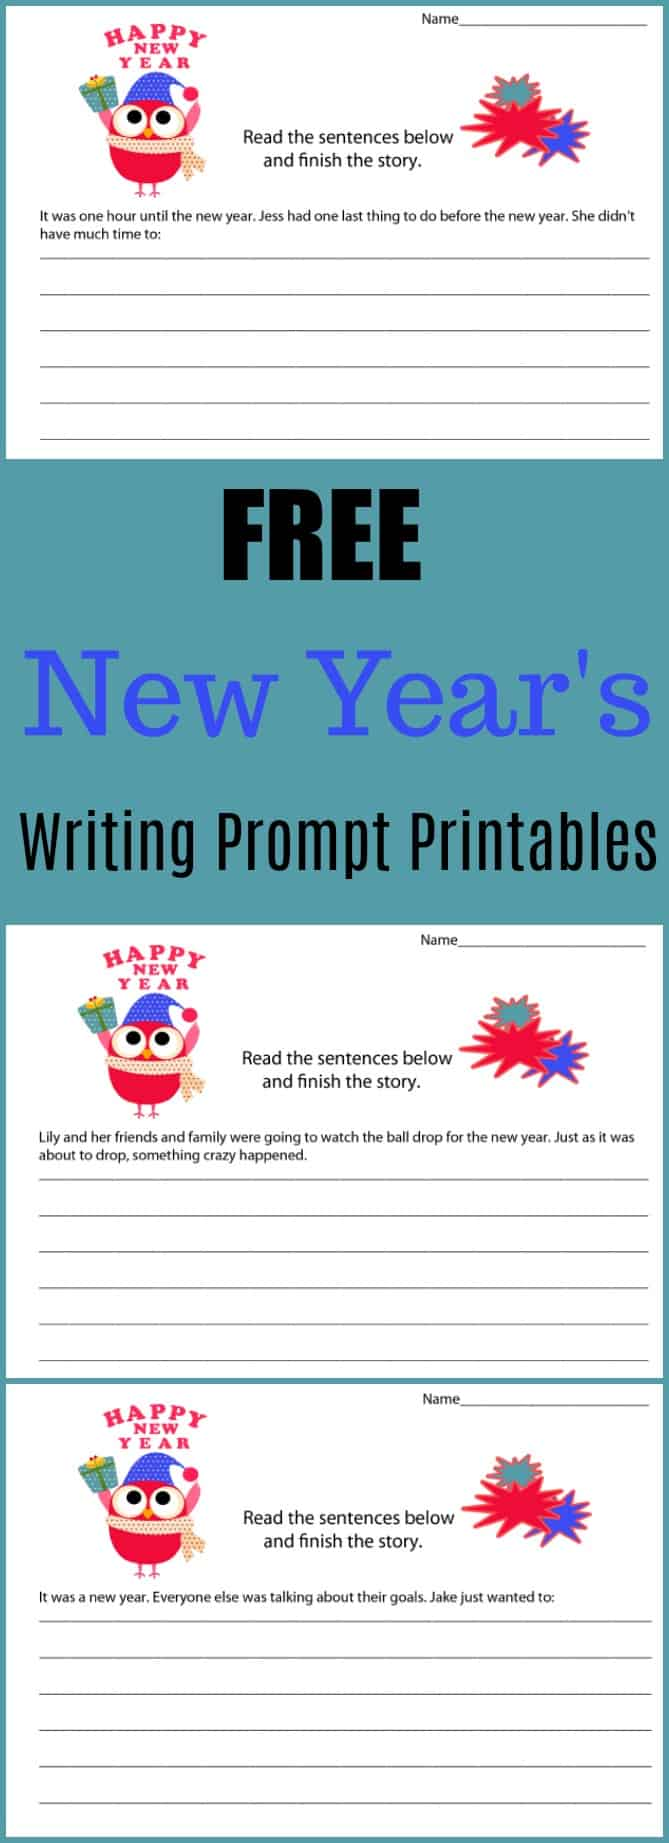 New Year's Even Holiday Writing Prompt Printables #writing #writingprompt #holiday #printable #freeprintable #education #edchat #homeschool #homeschooling #newyearseve